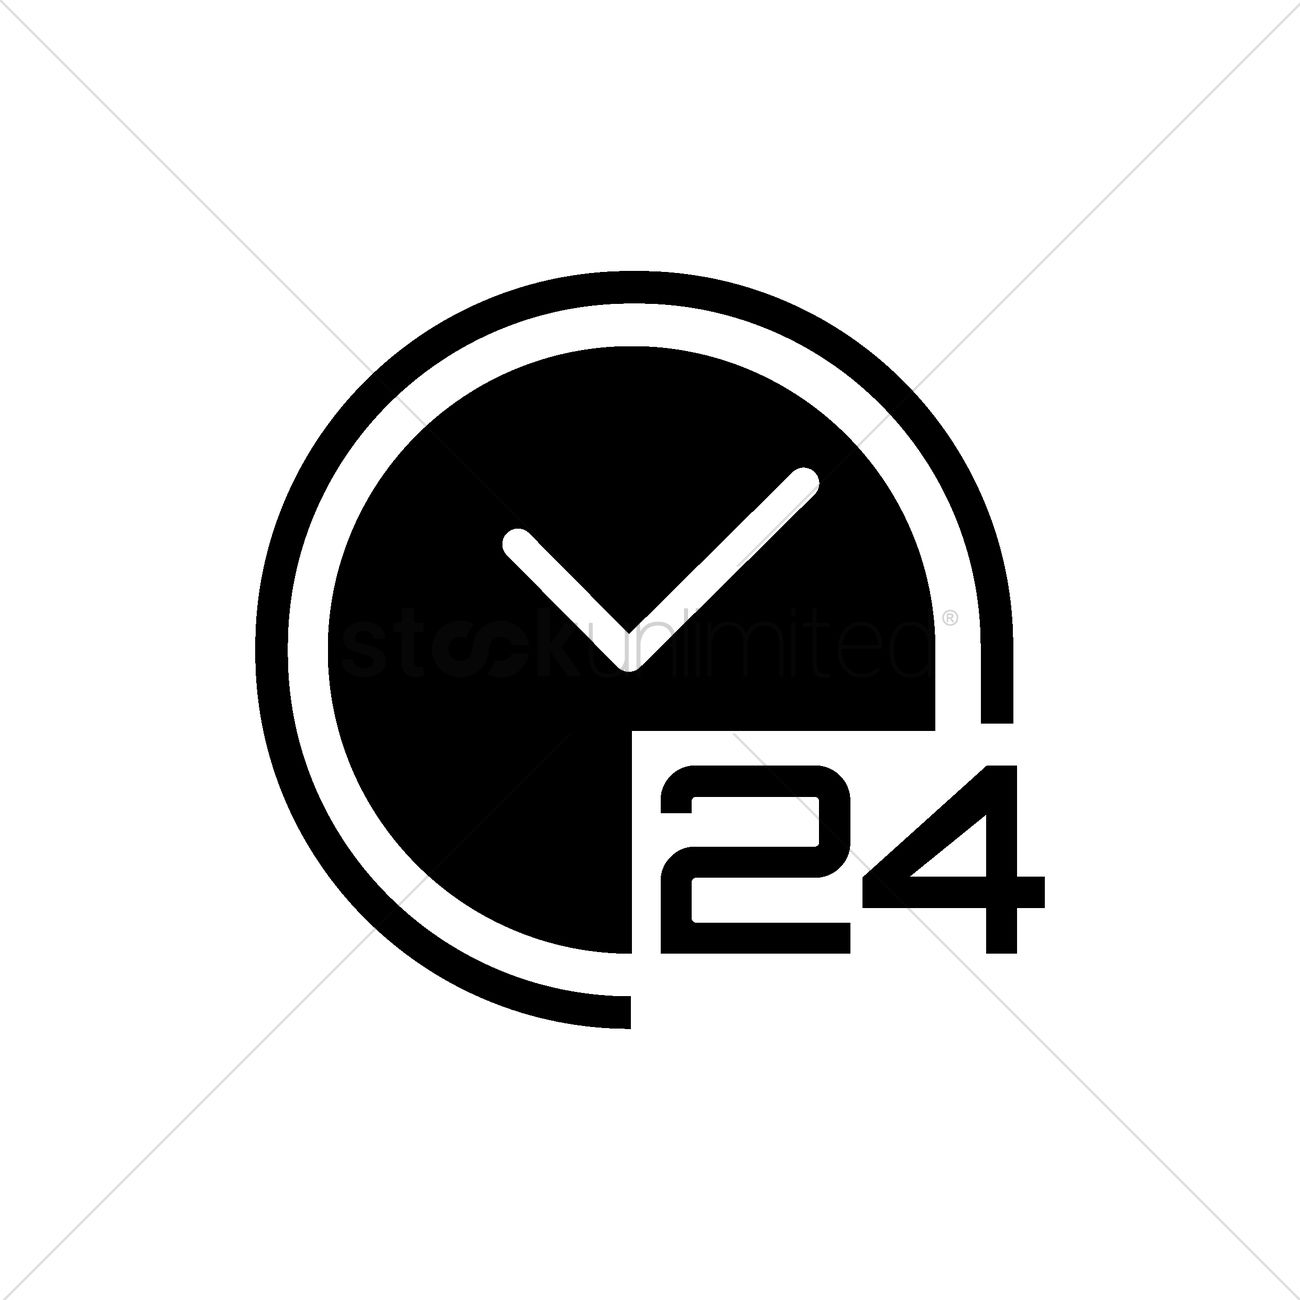 24 hours clock icon Vector Image - 2003997 | StockUnlimited